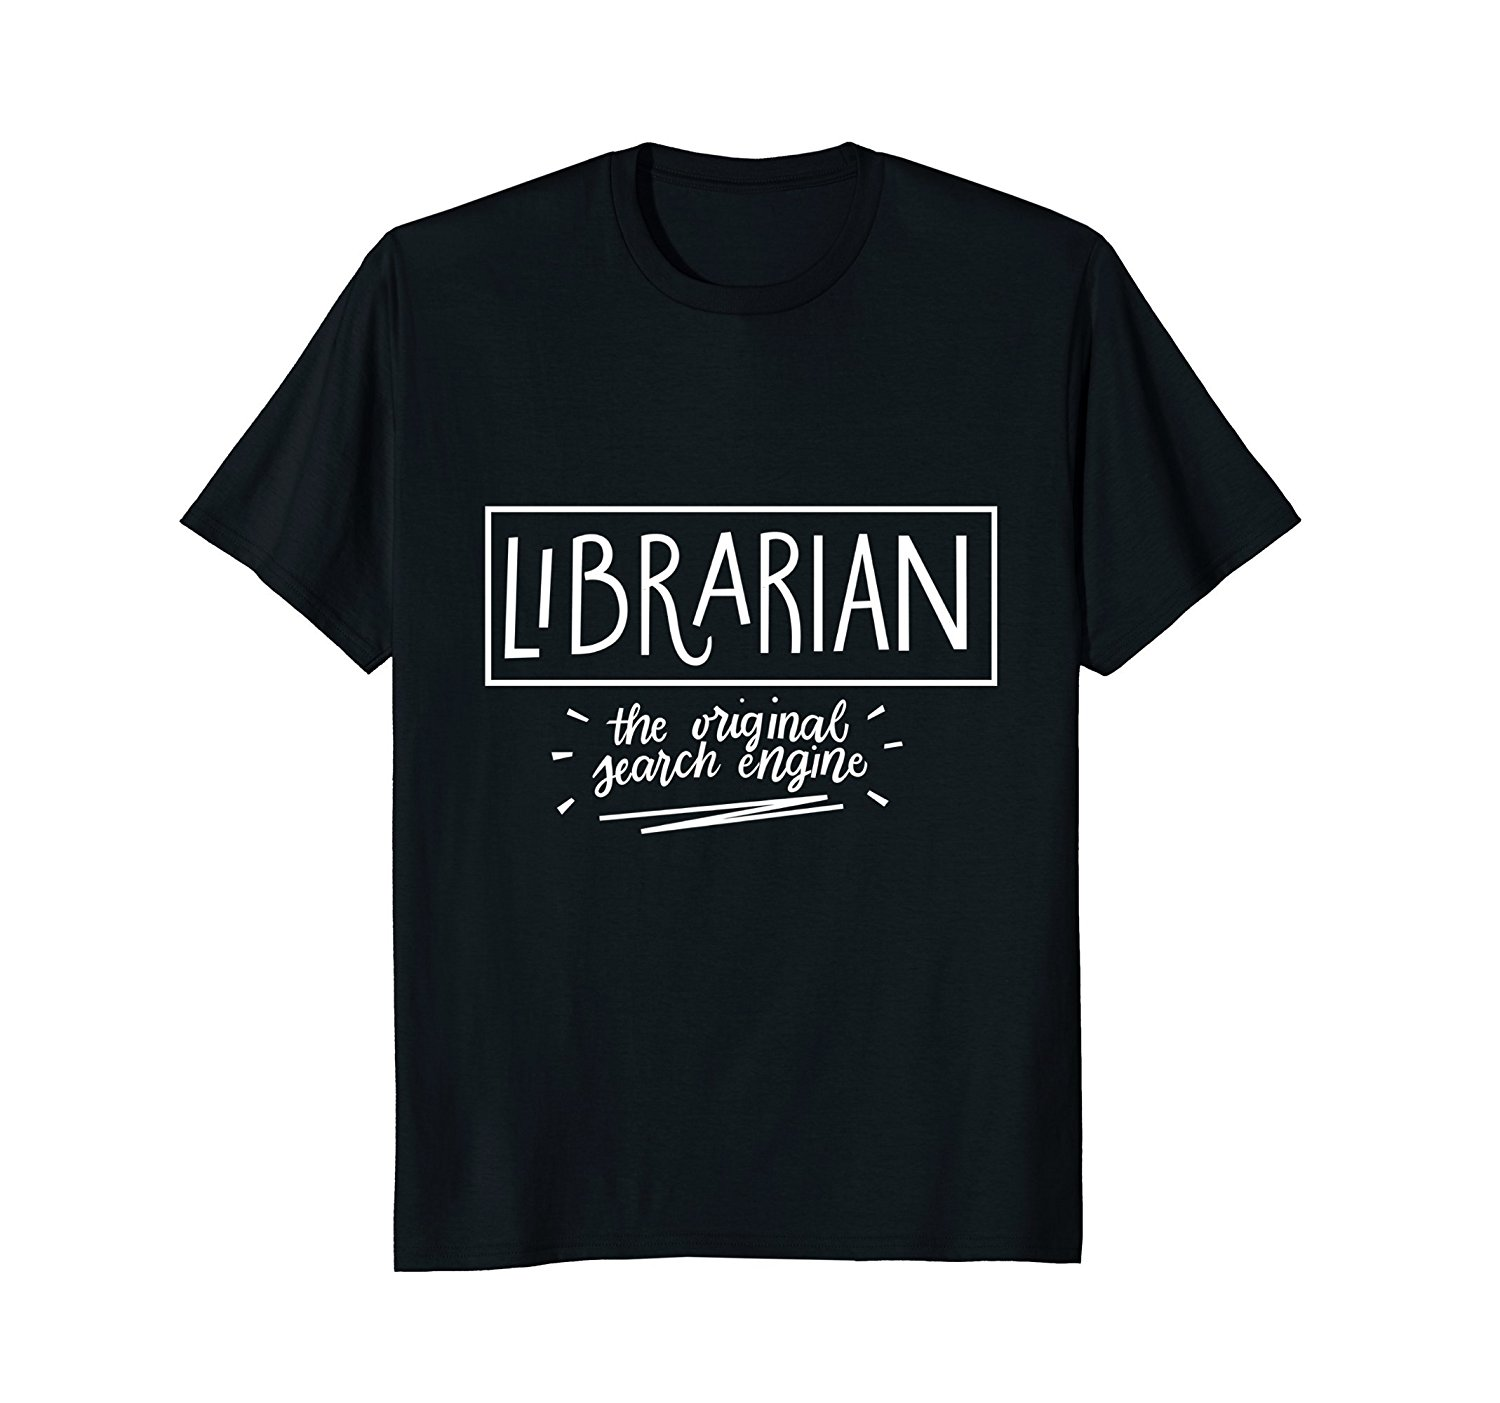 2019 Hot sale Fashion Librarian Original Search Engine Shirt | Librarian Gifts Tee Tee shirt image